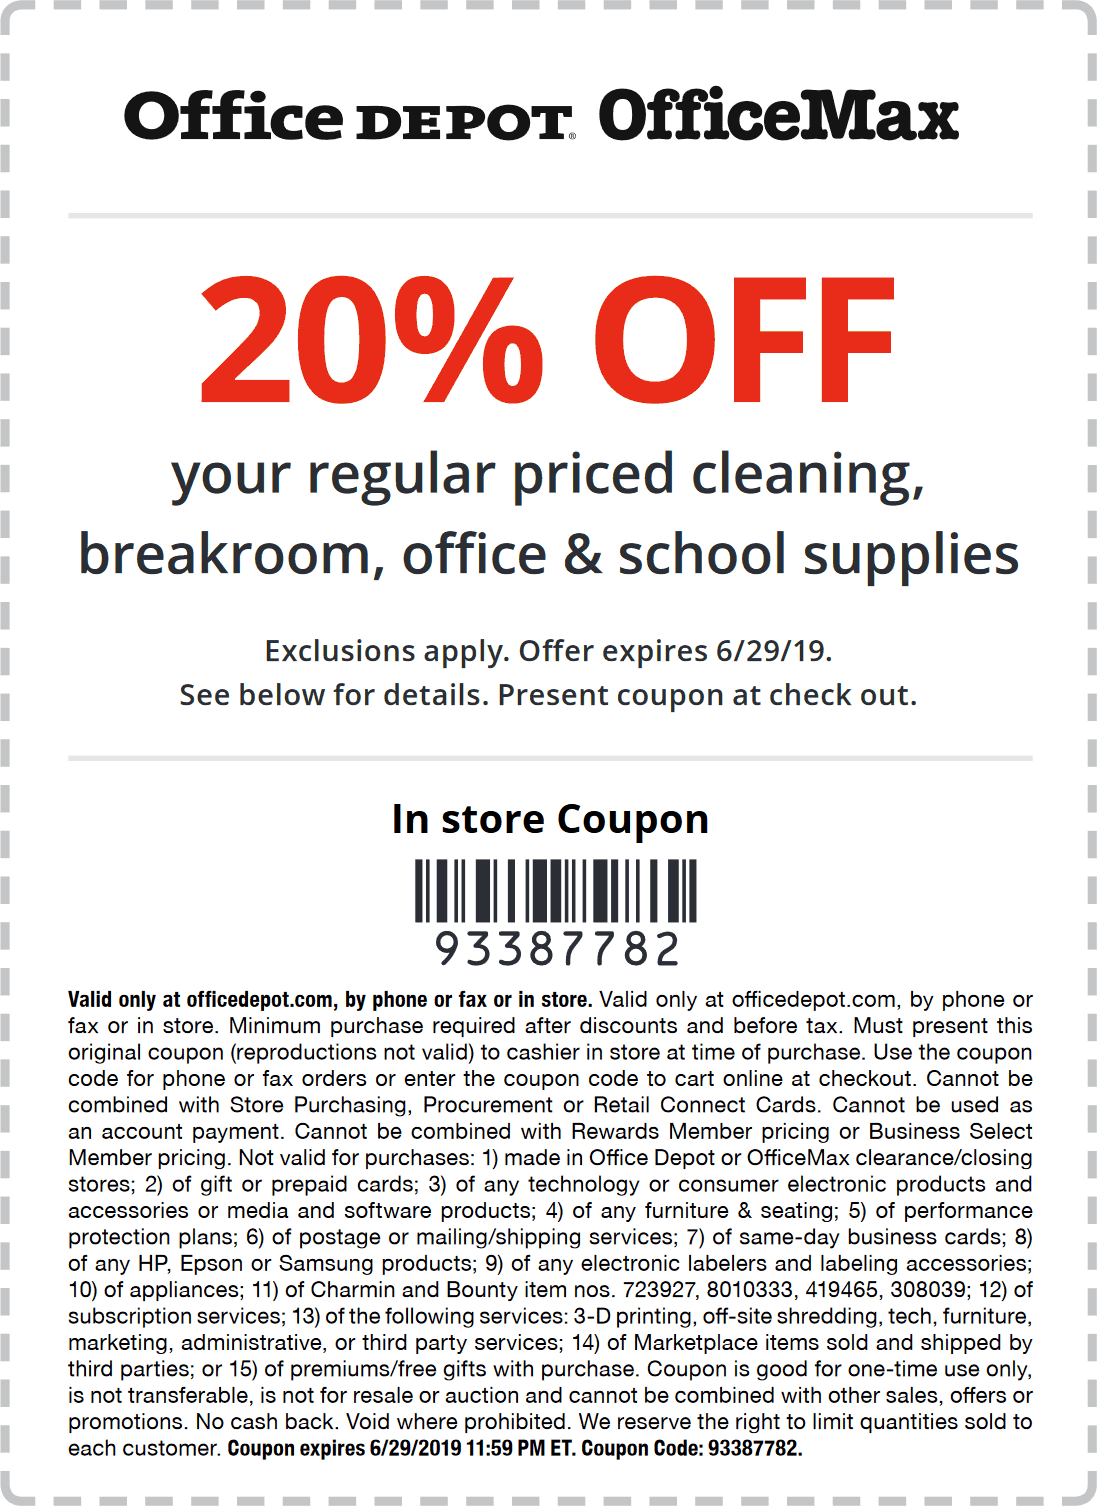 OfficeDepot.com Promo Coupon 20% off at Office Depot, or online via promo code 93387782